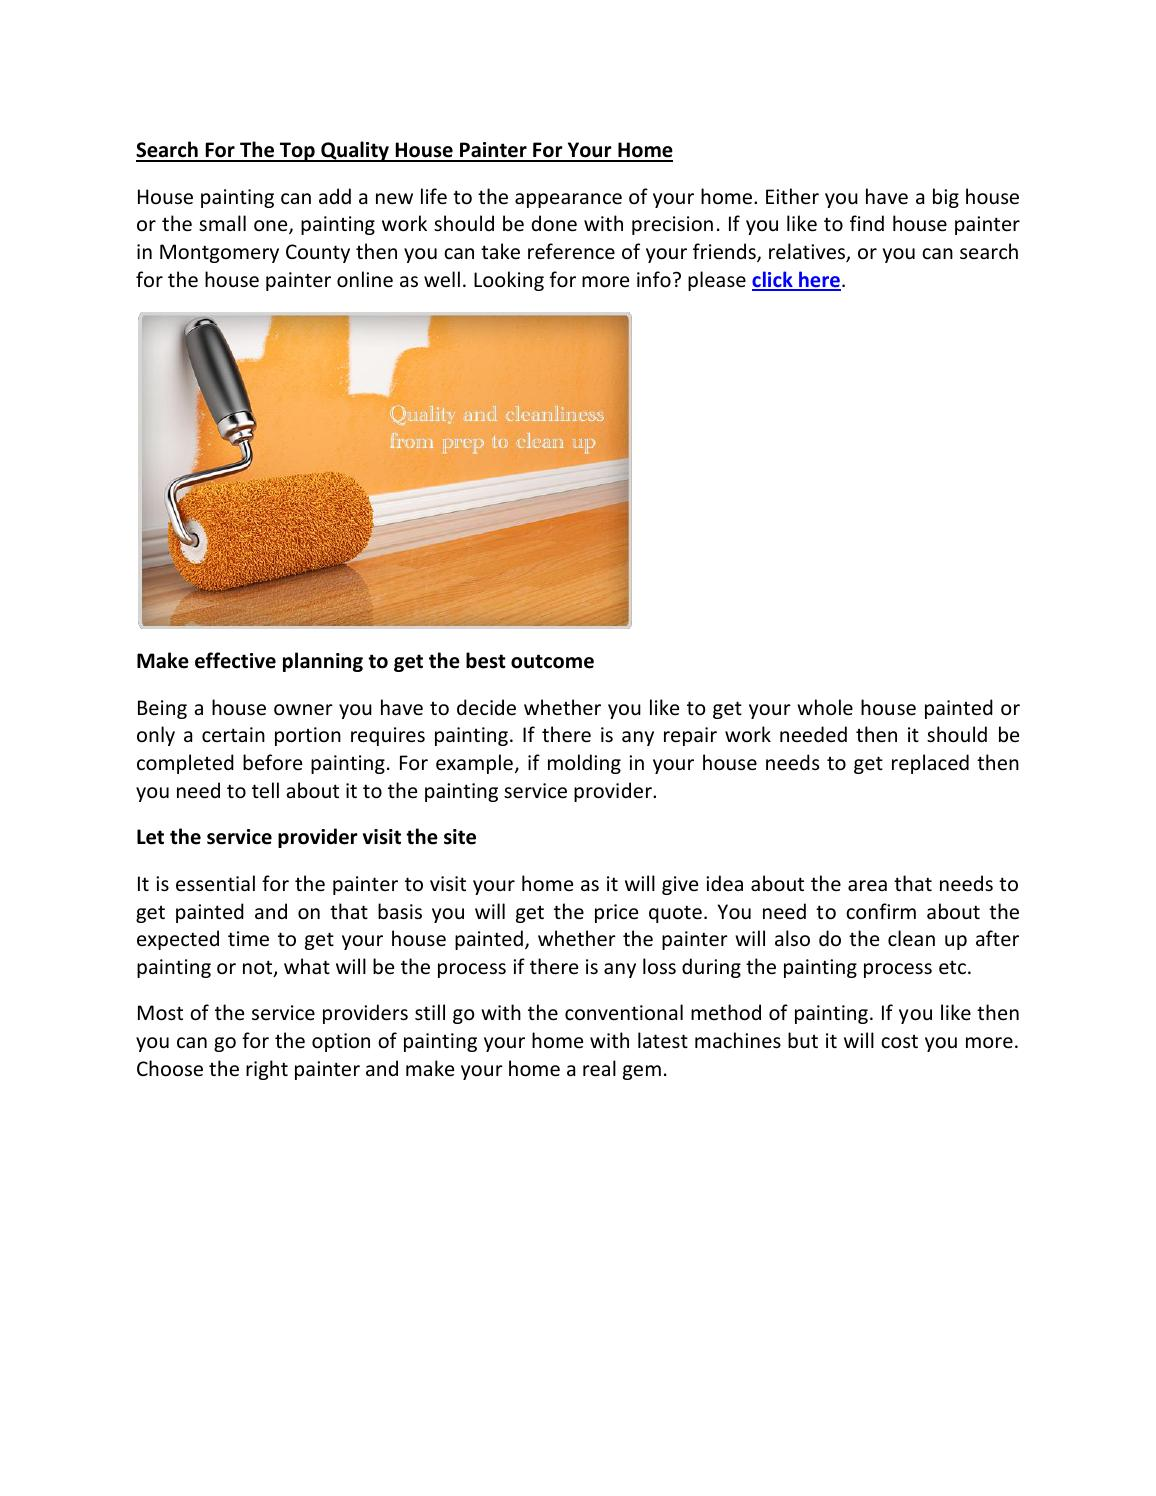 search for the top quality house painter for your home by cecil